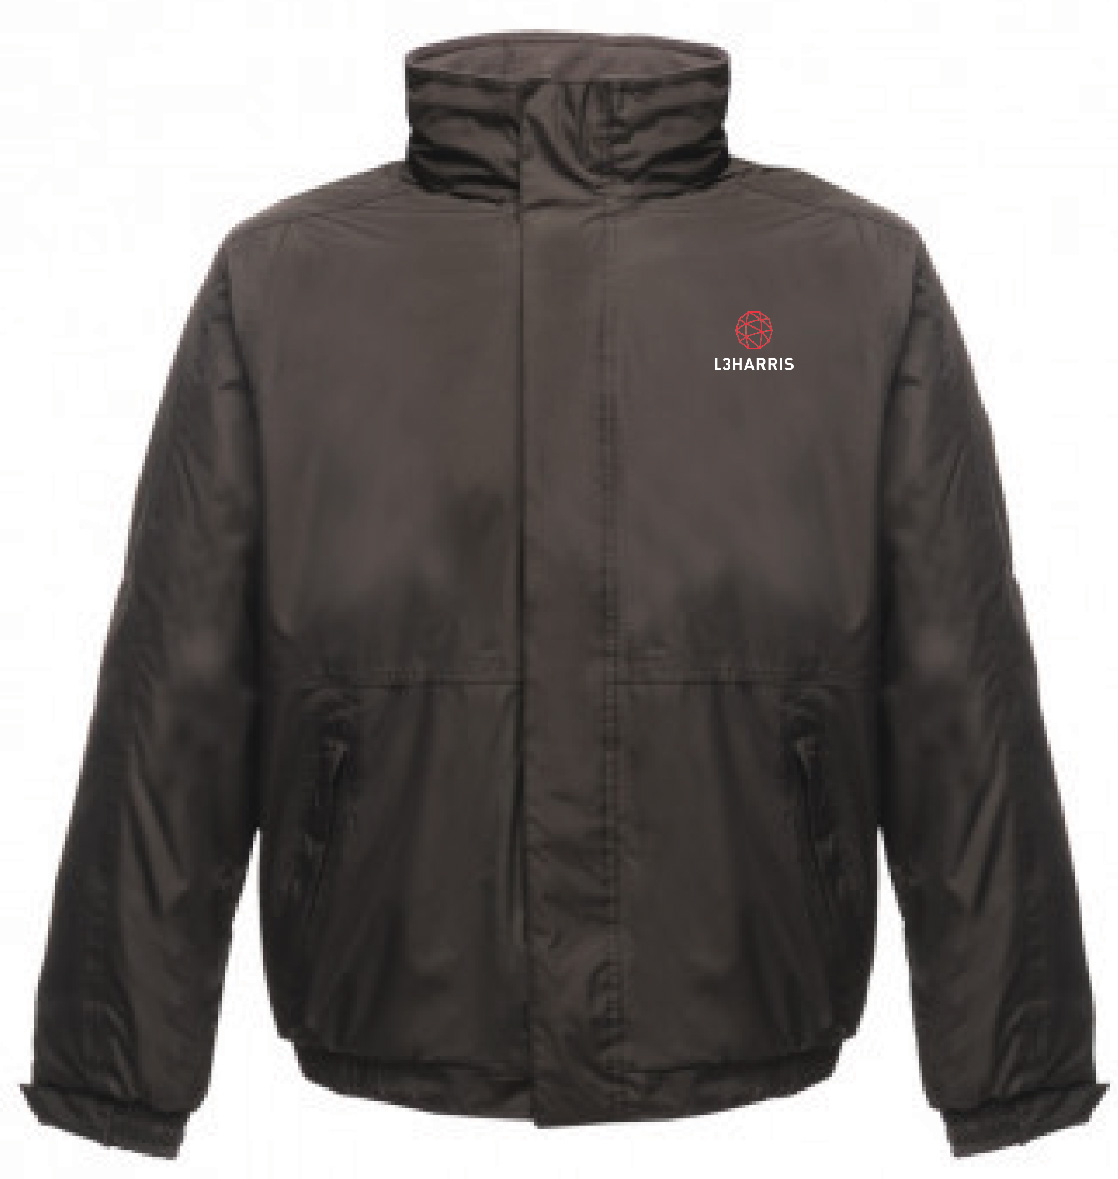 L3 Harris Mens Cadet Regatta Dover Waterproof Insulated Jacket